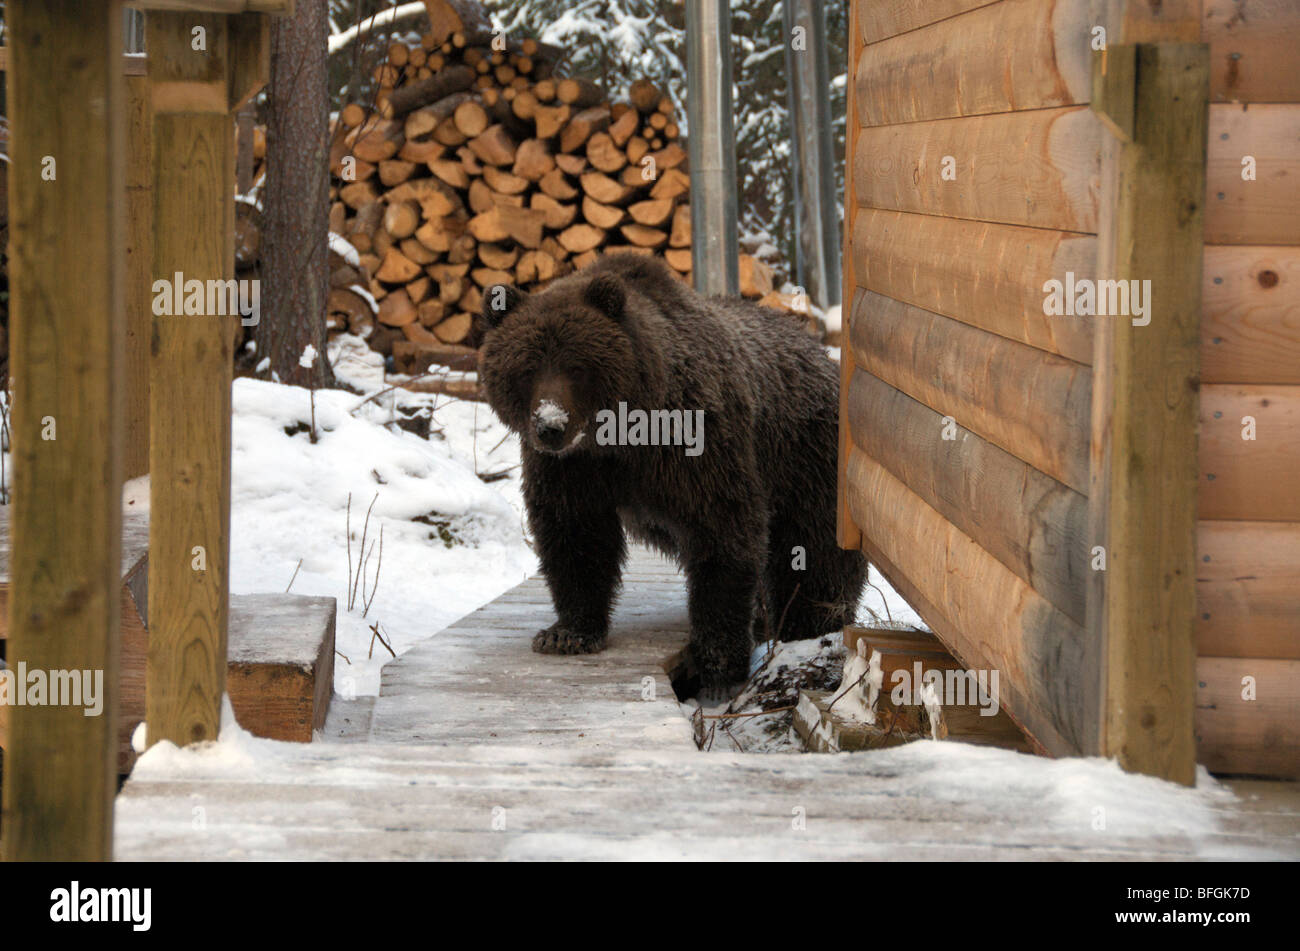 Grizzly Bear outside log cabin by Fishing Branch River, Ni'iinlii Njik Ecological Reserve, Yukon Territory, - Stock Image